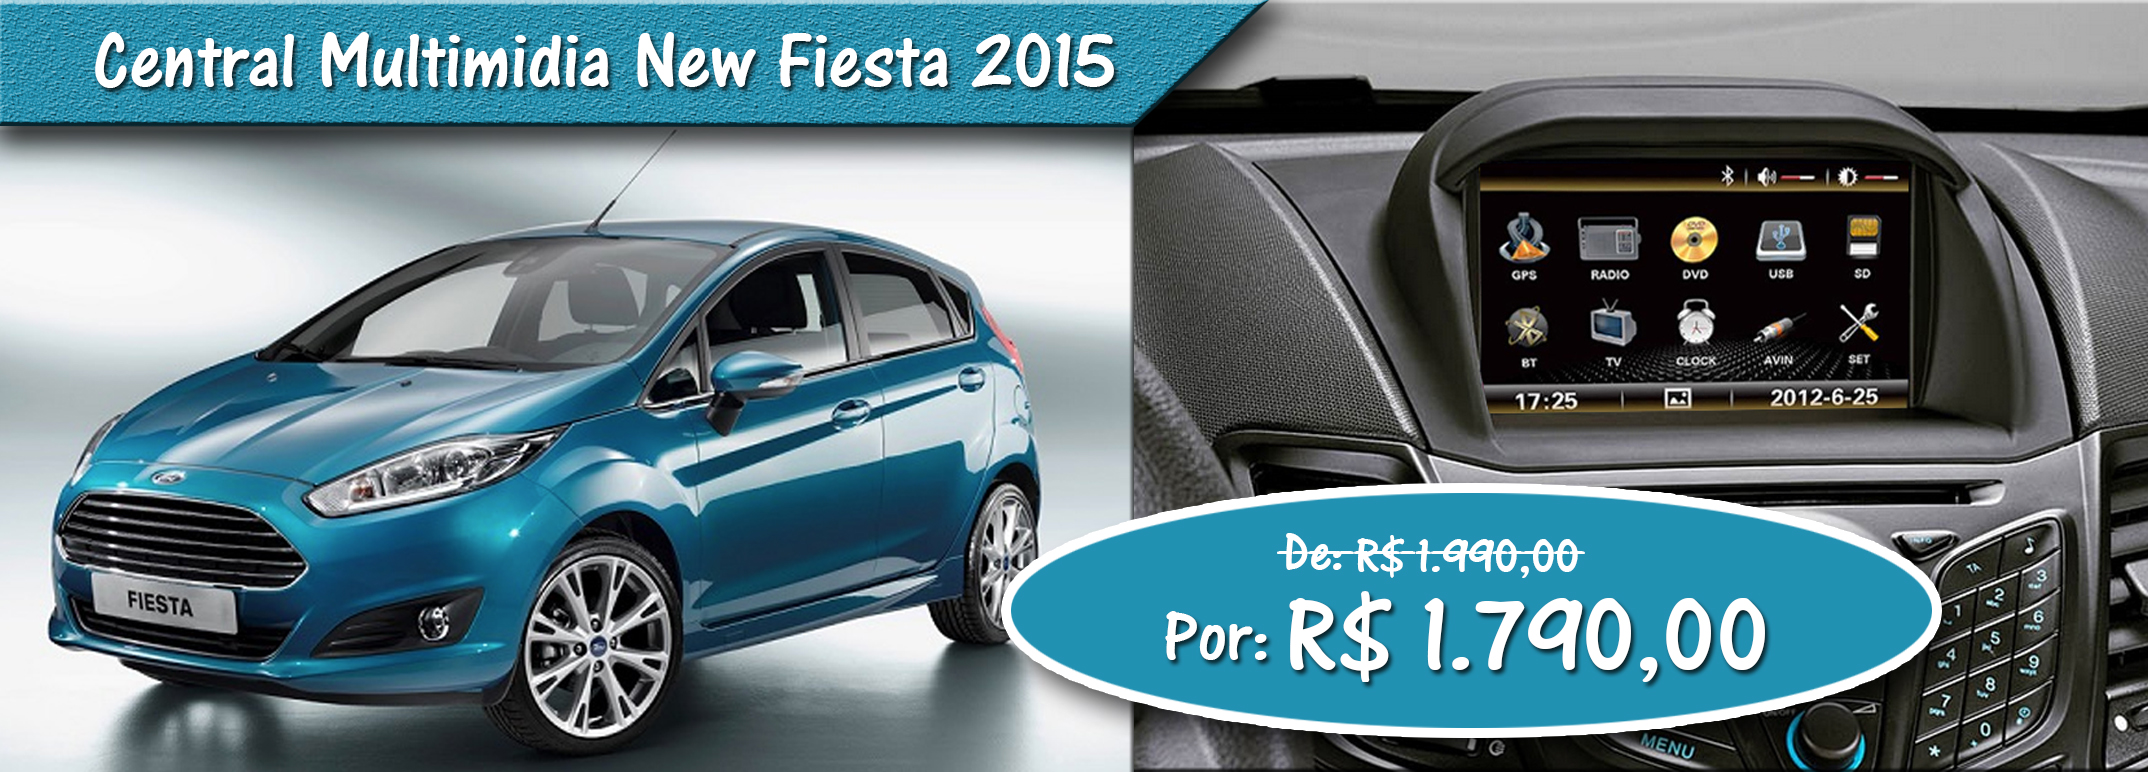 Central Multimidia Ford New Fiesta 2015